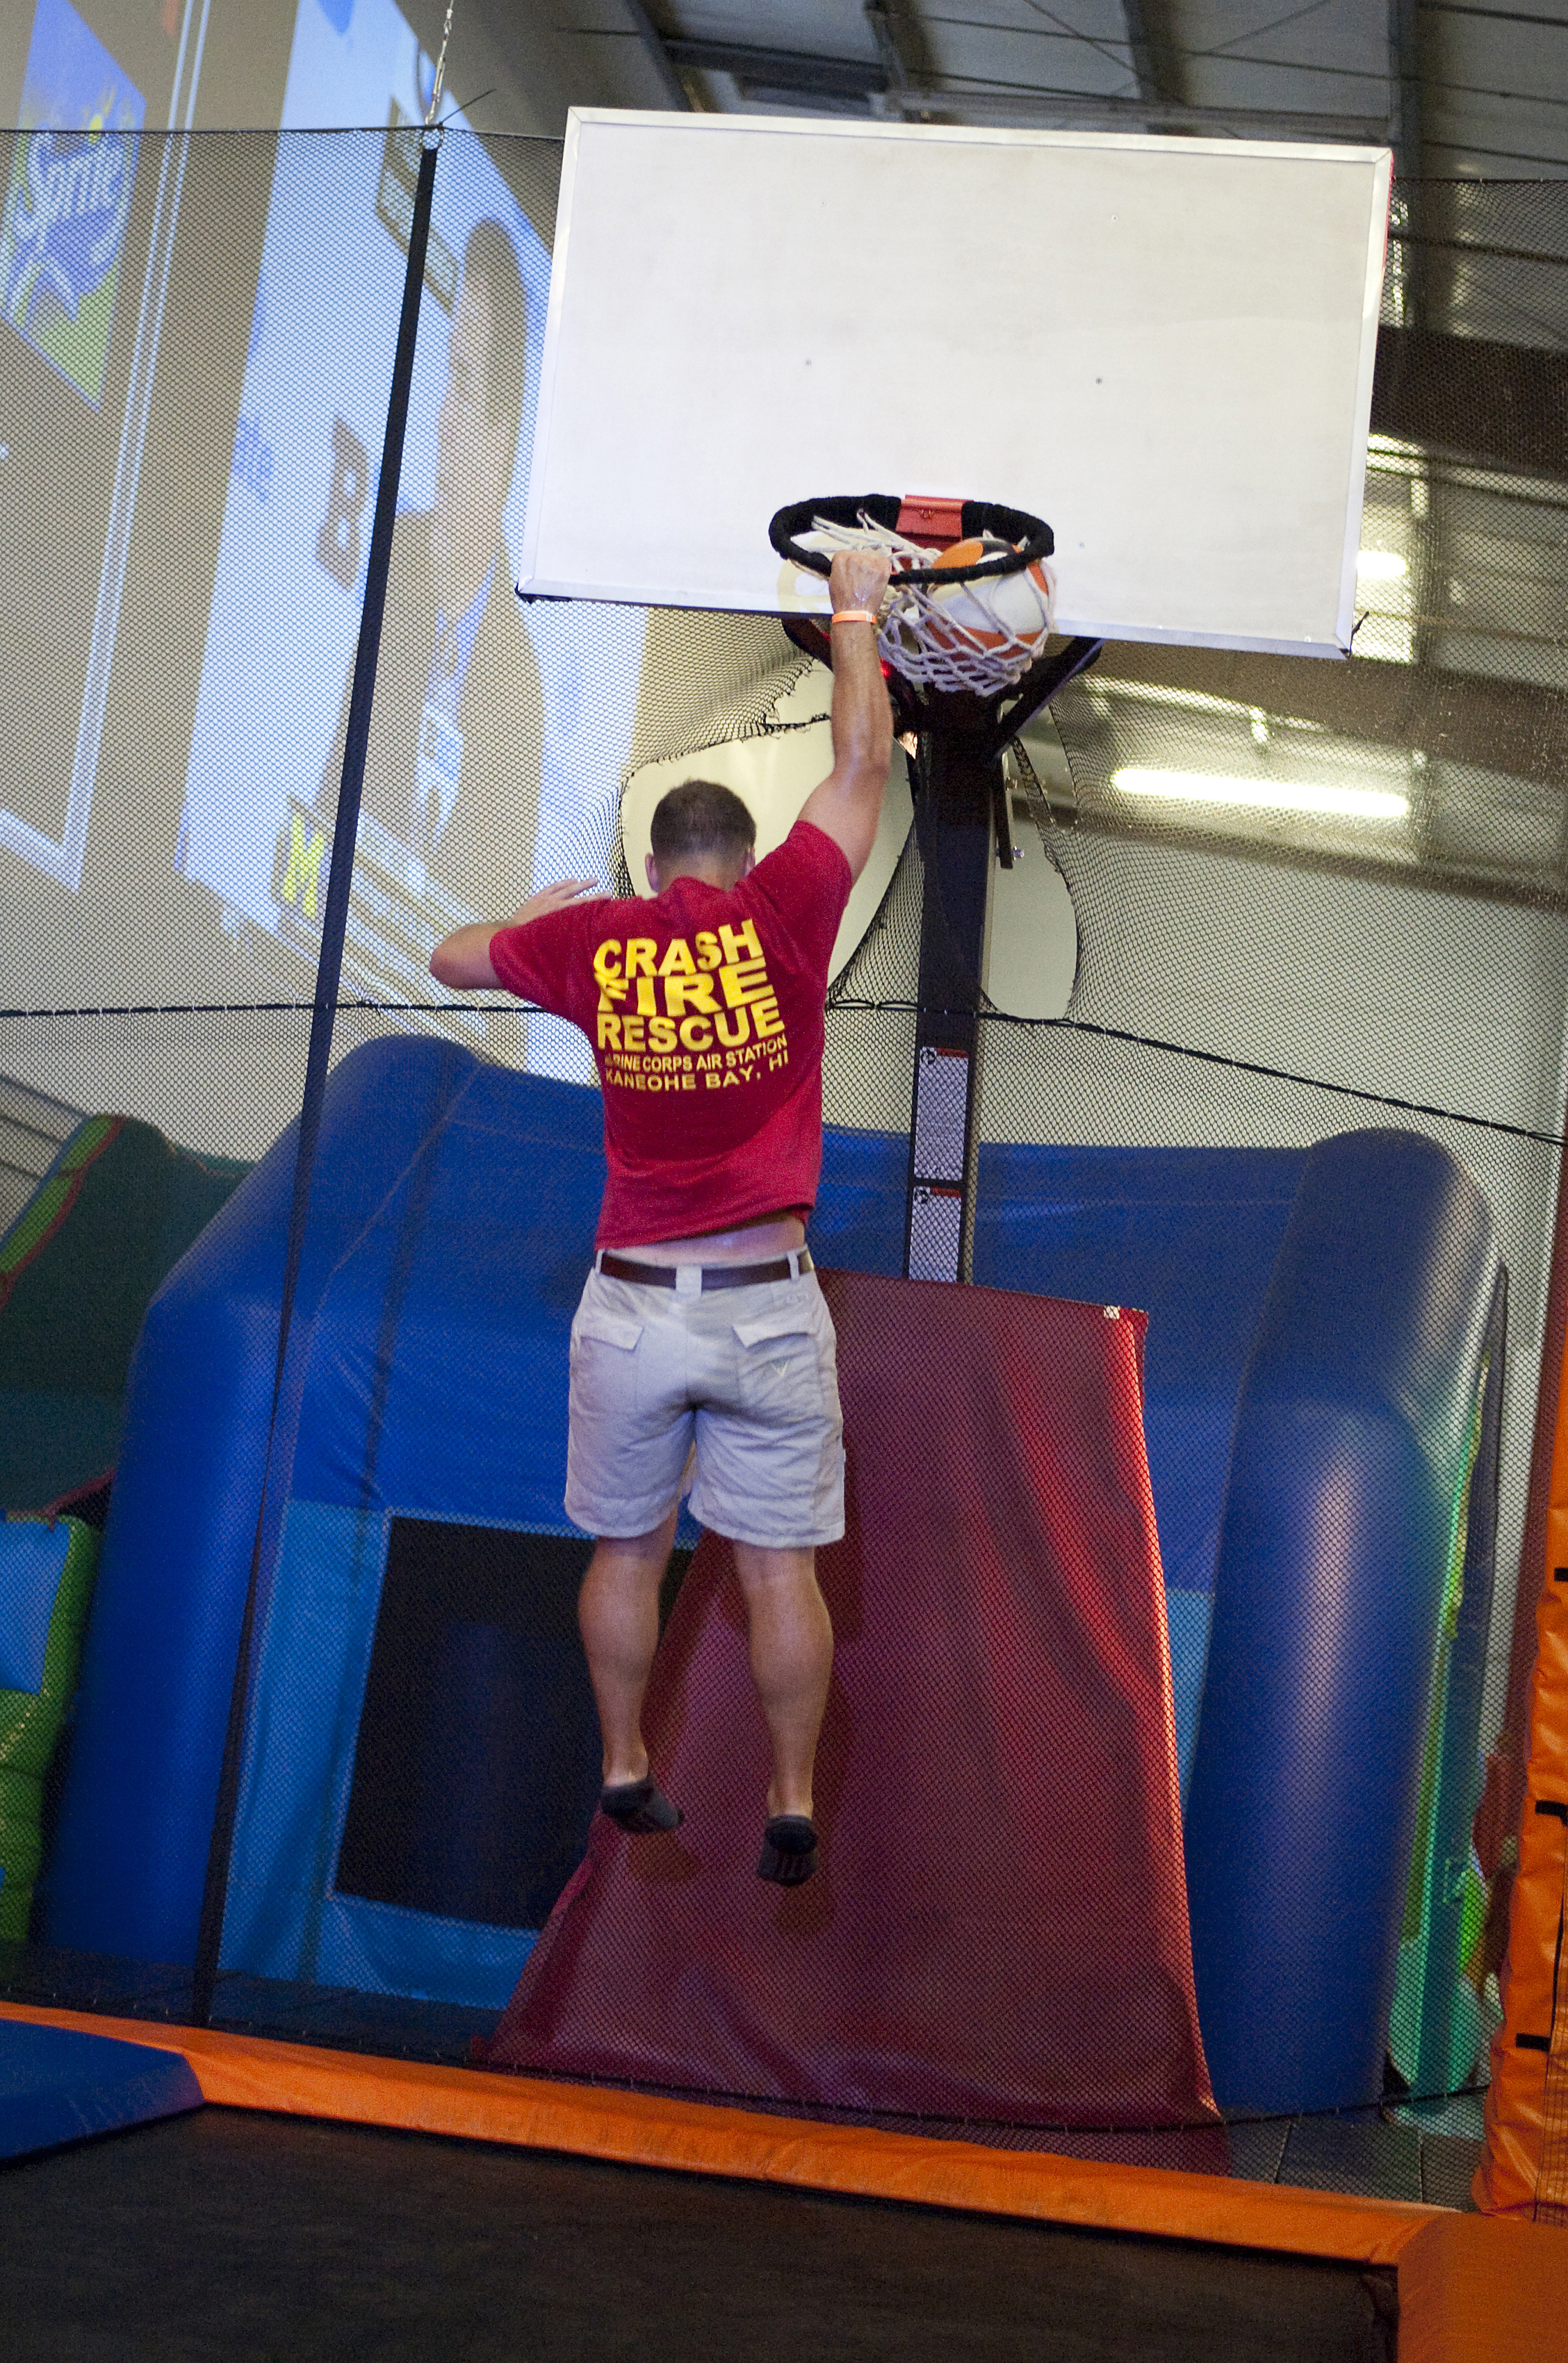 Slam dunk activity at BOUNCE Dubai